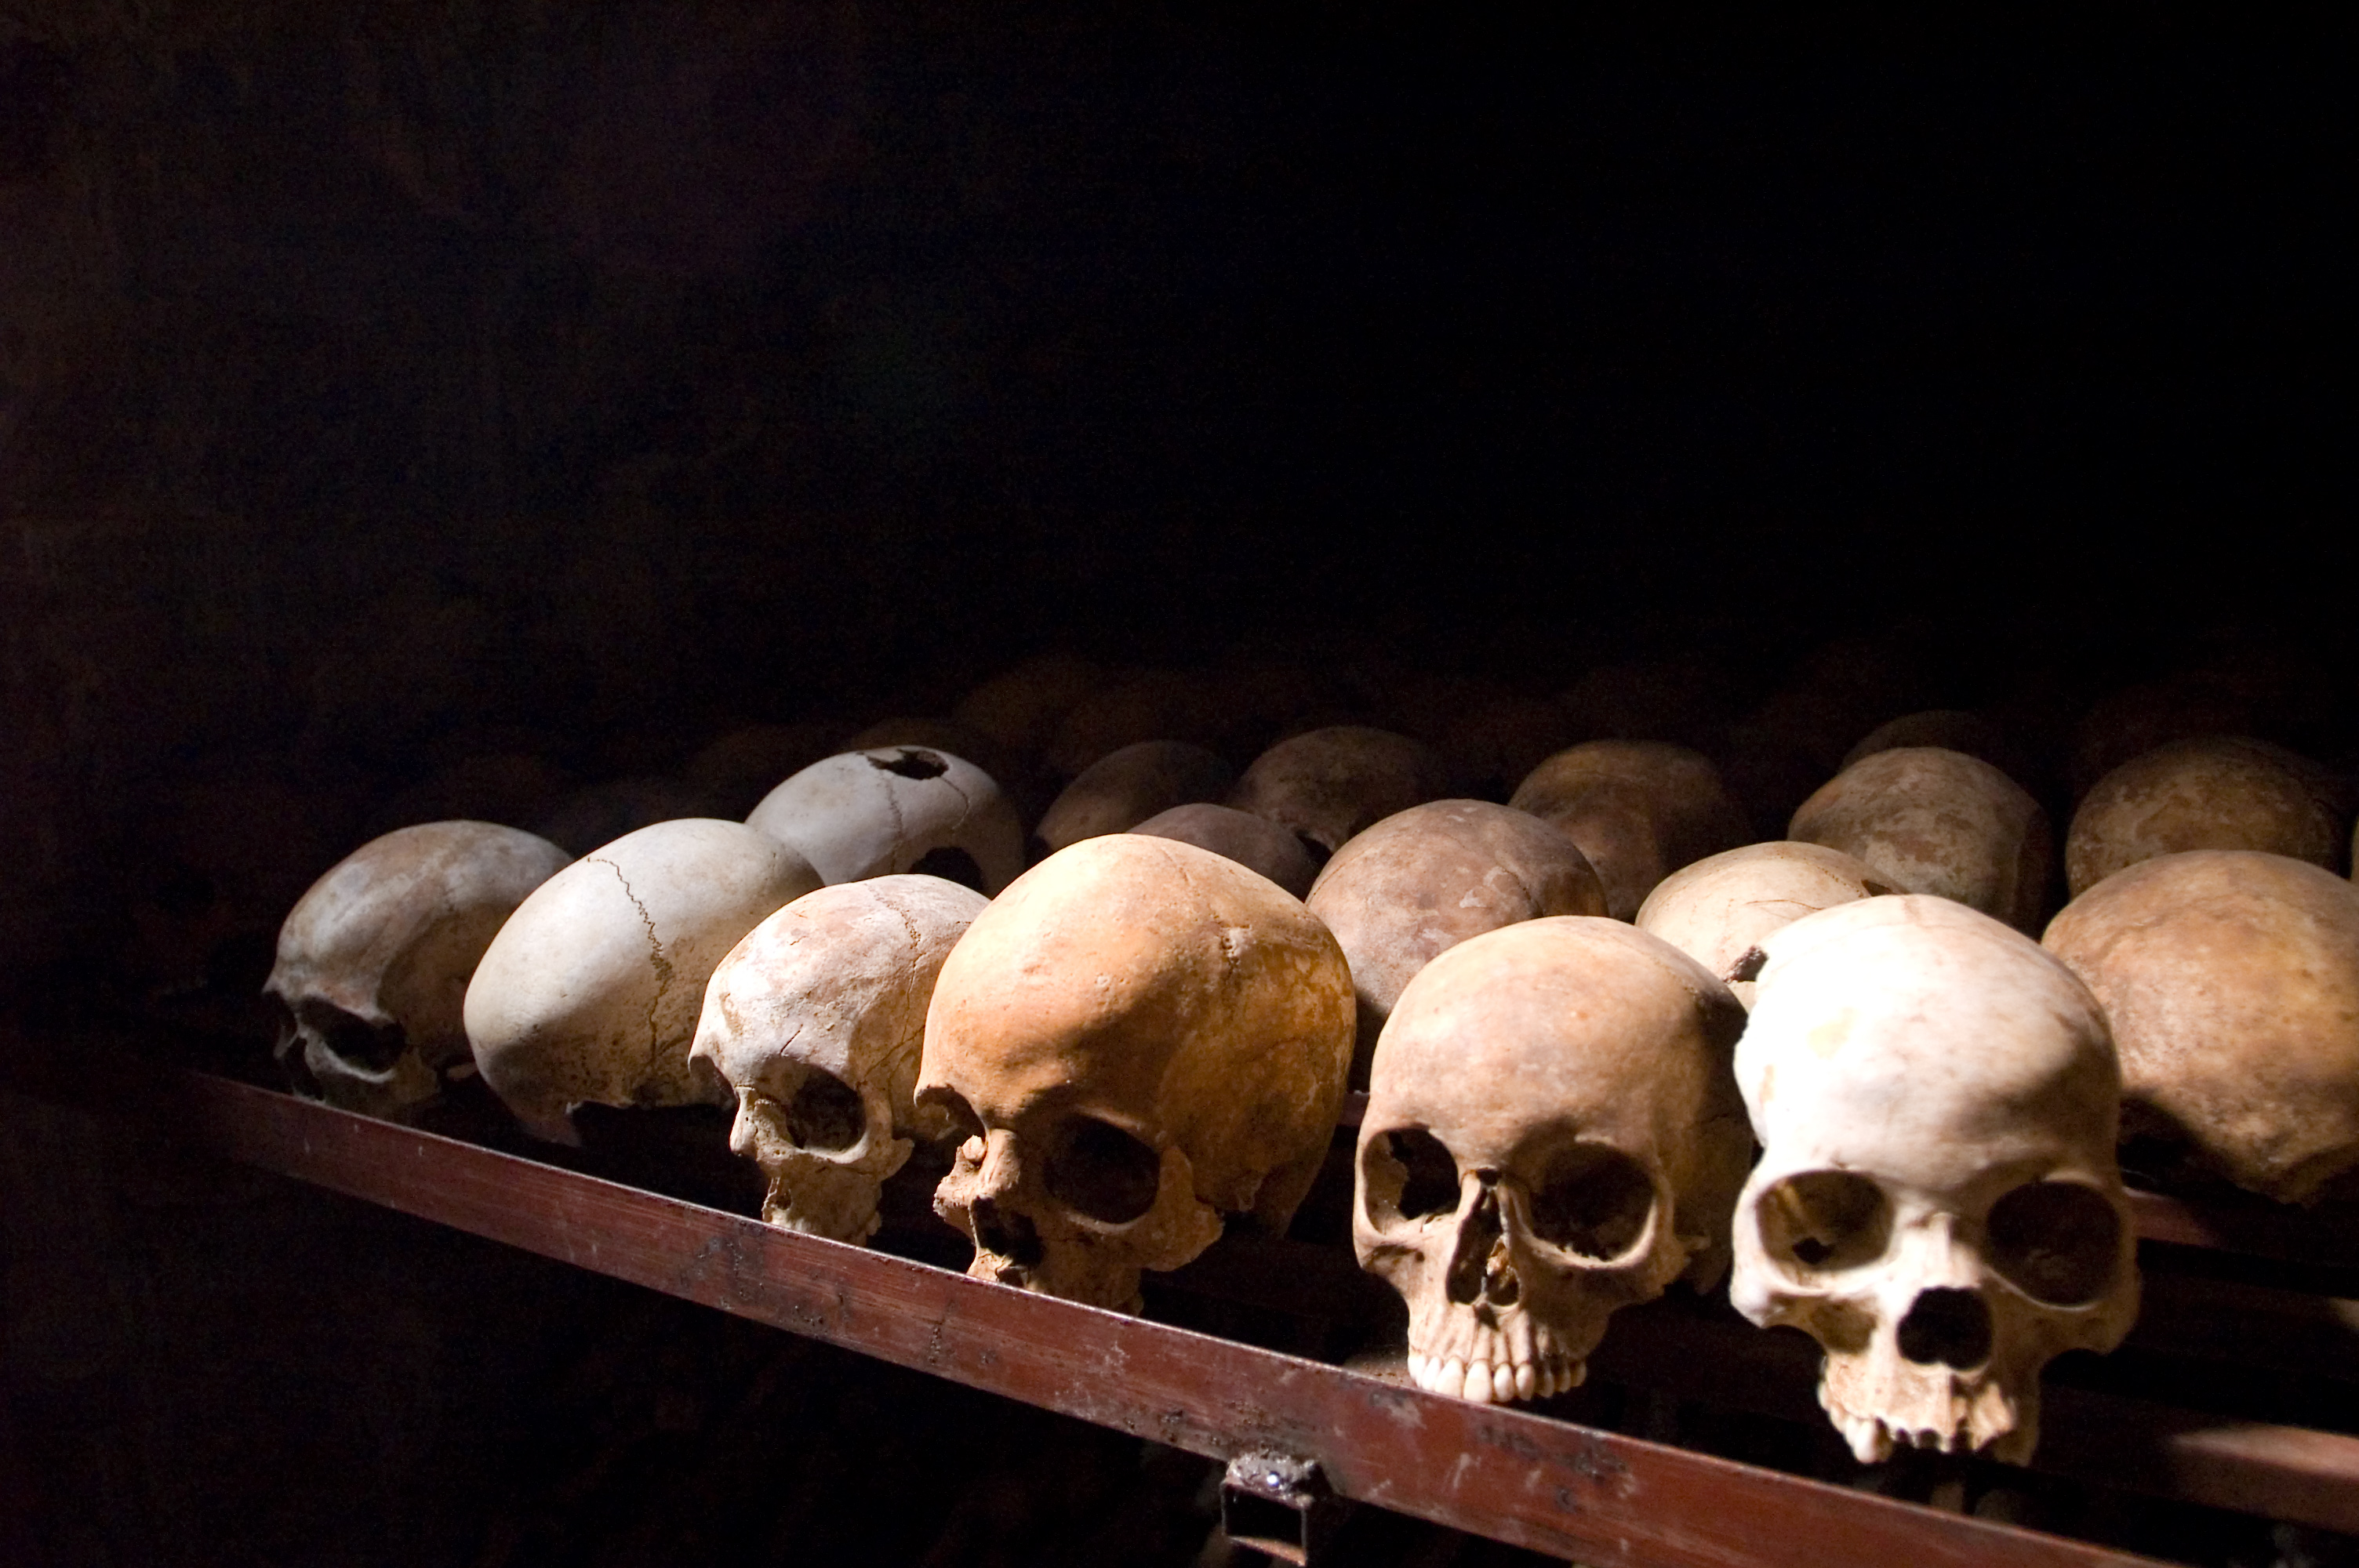 Can the Liberal World Order Stop Genocide?